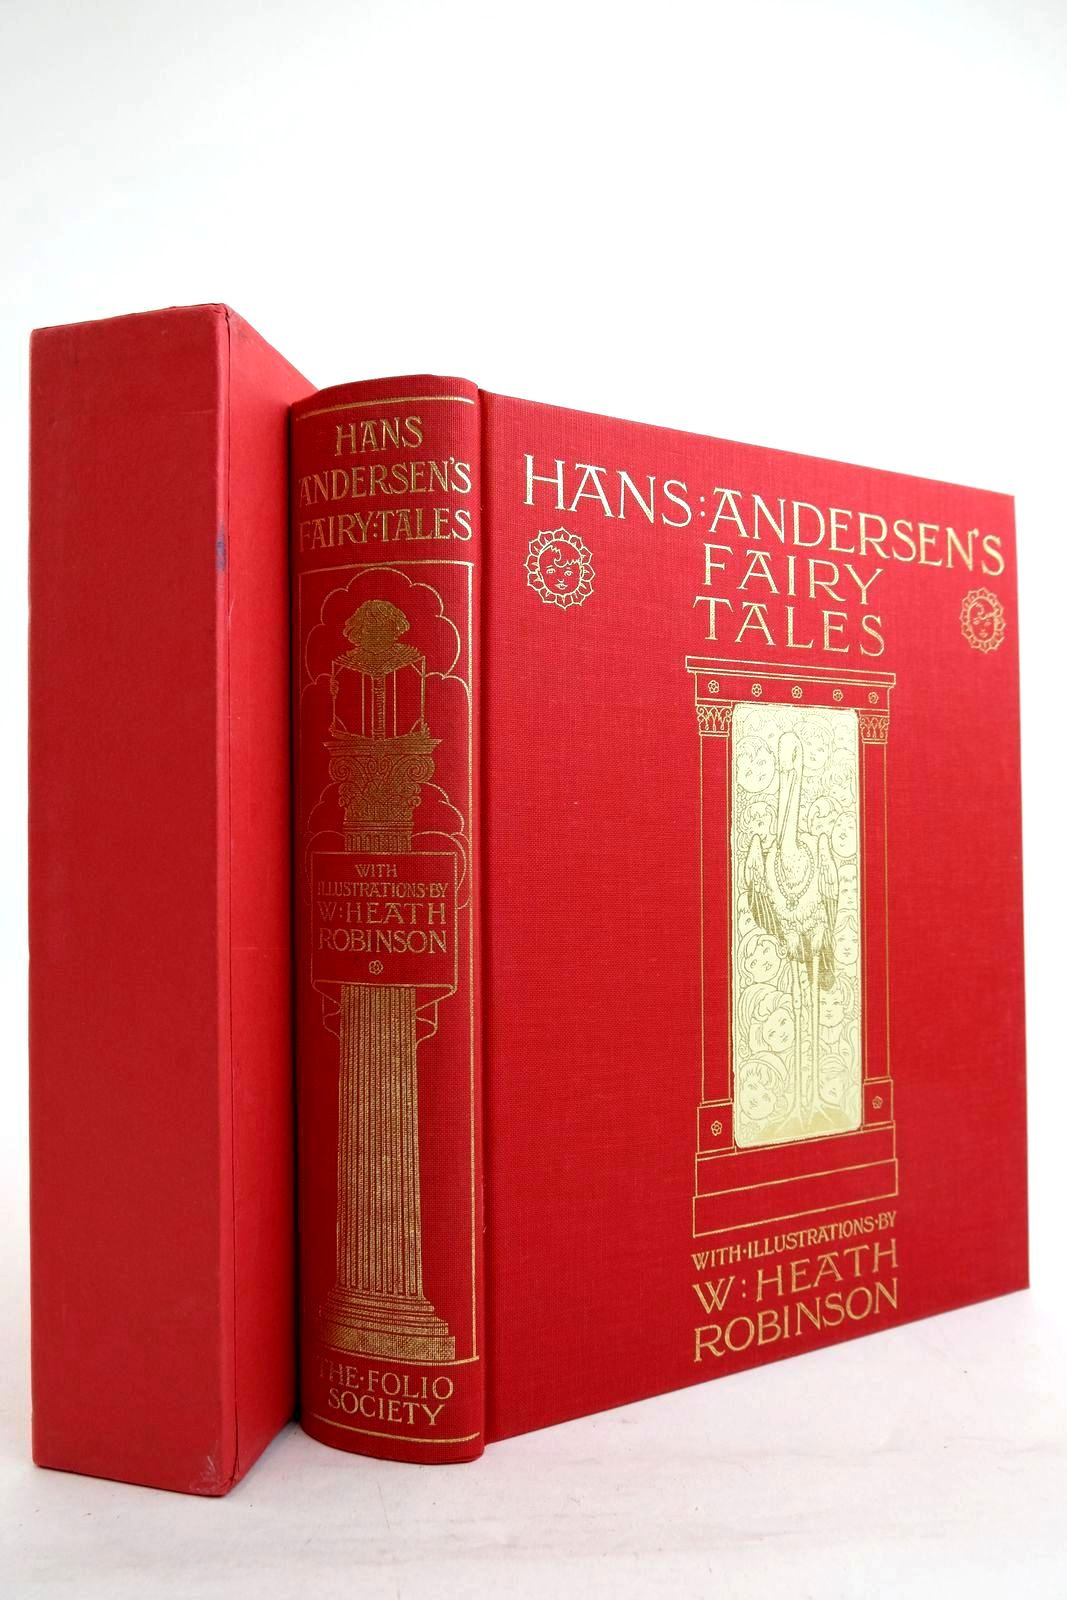 Photo of HANS ANDERSEN'S FAIRY TALES written by Andersen, Hans Christian illustrated by Robinson, W. Heath published by Folio Society (STOCK CODE: 2134281)  for sale by Stella & Rose's Books